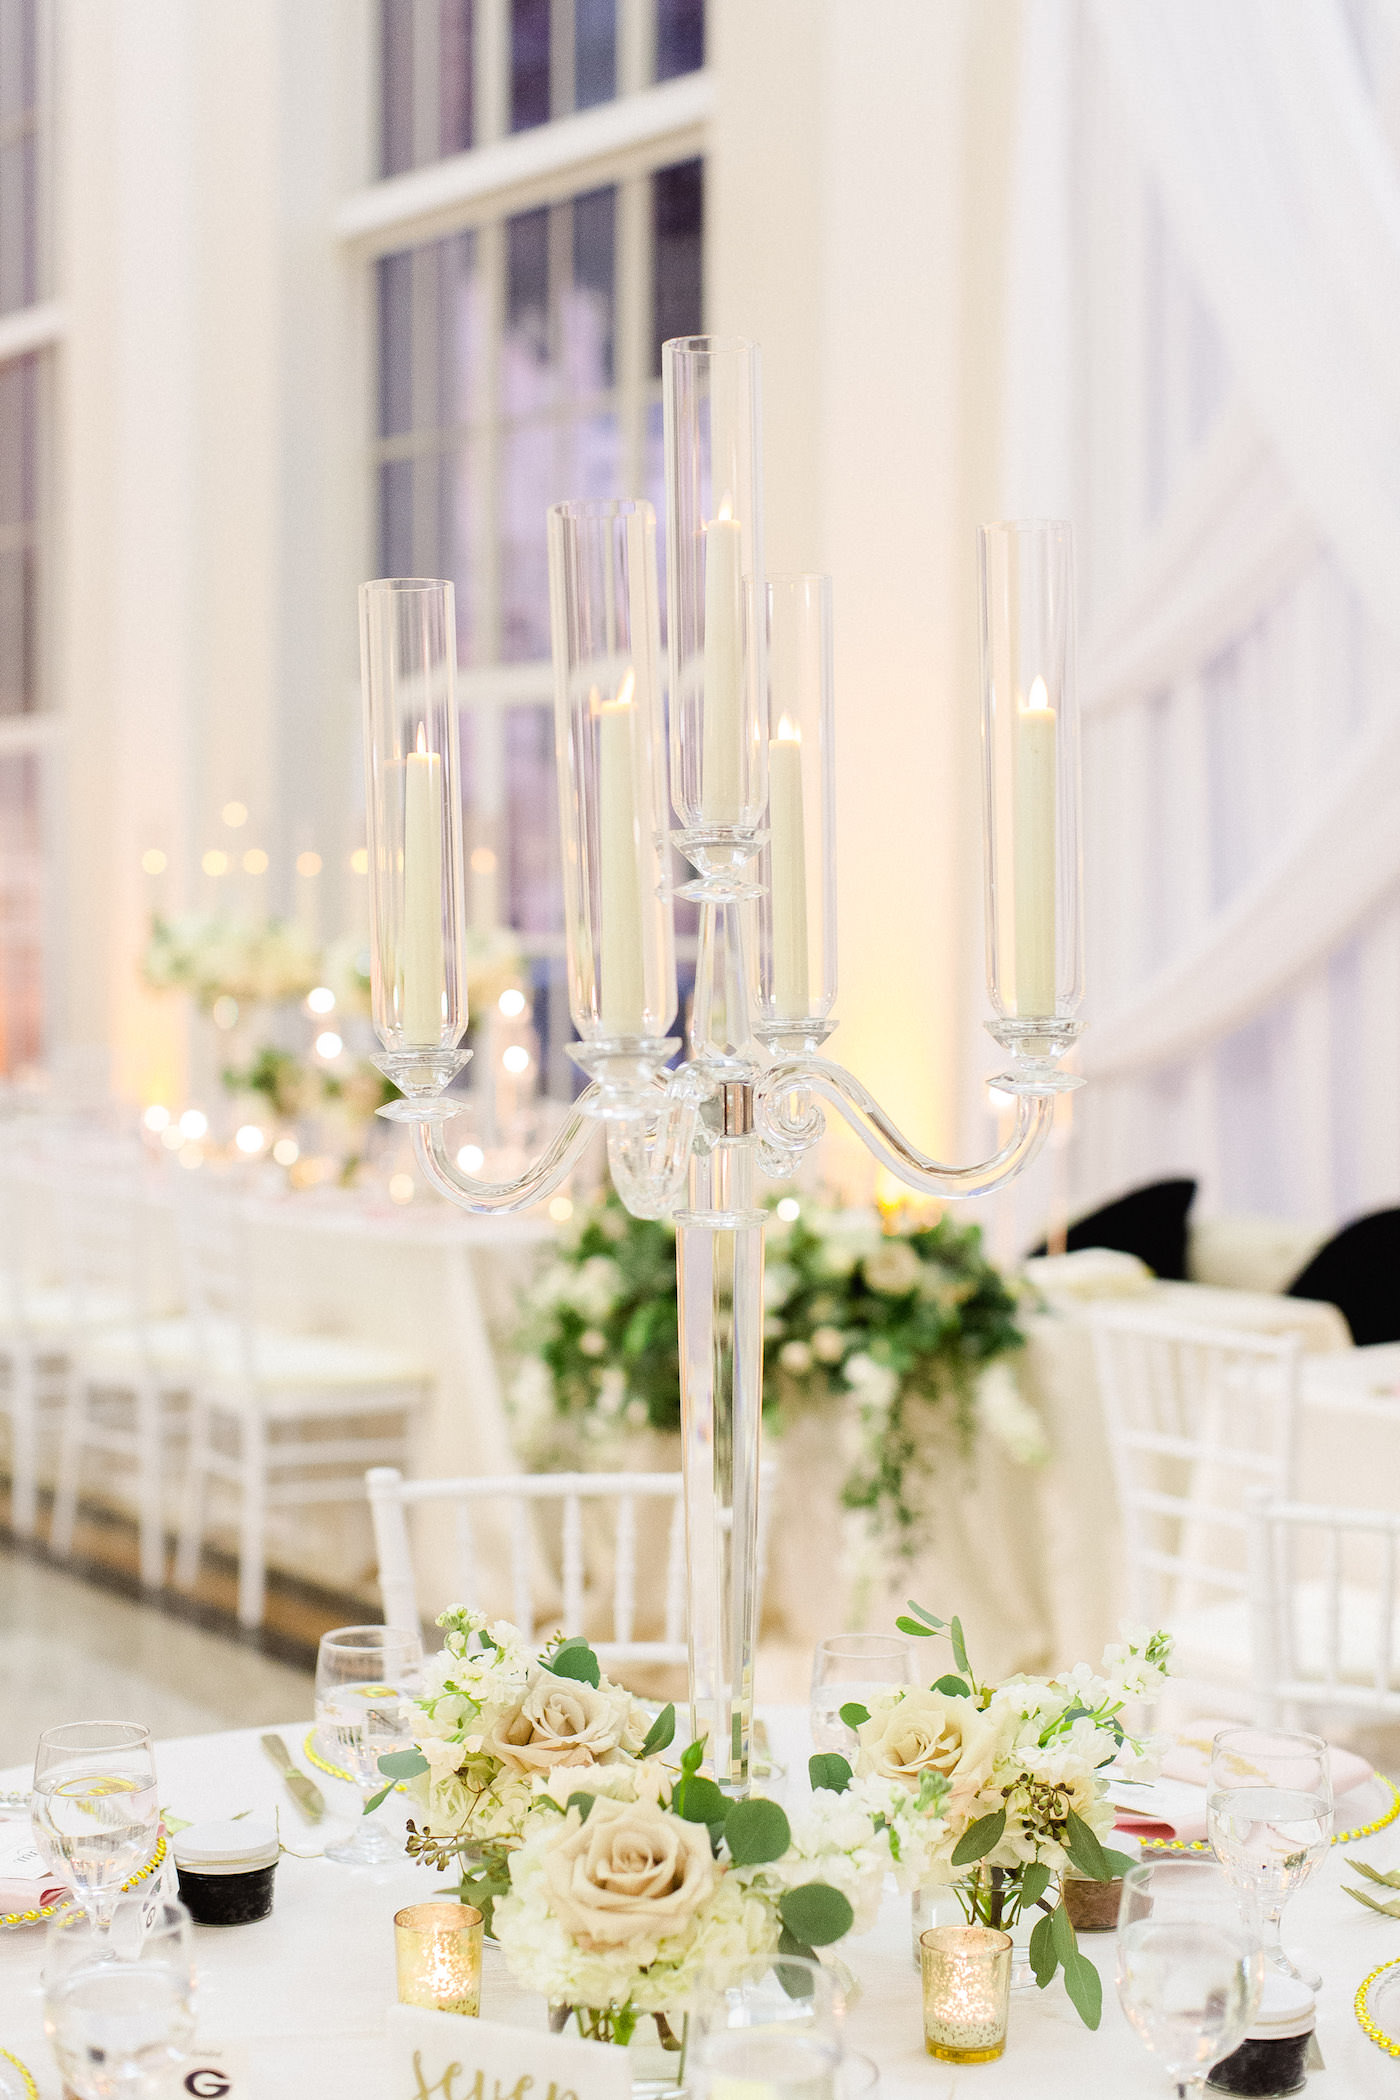 Classic Wedding Reception and Decor, Tall Crystal Candelabra Centerpieces with Greenery, Ivory Flowers, Blush Pink Roses, Gold Mercury Glass, White Chiavari Chairs | Downtown Tampa Wedding Venue The Vault | Florida Wedding Planner Breezin' Weddings